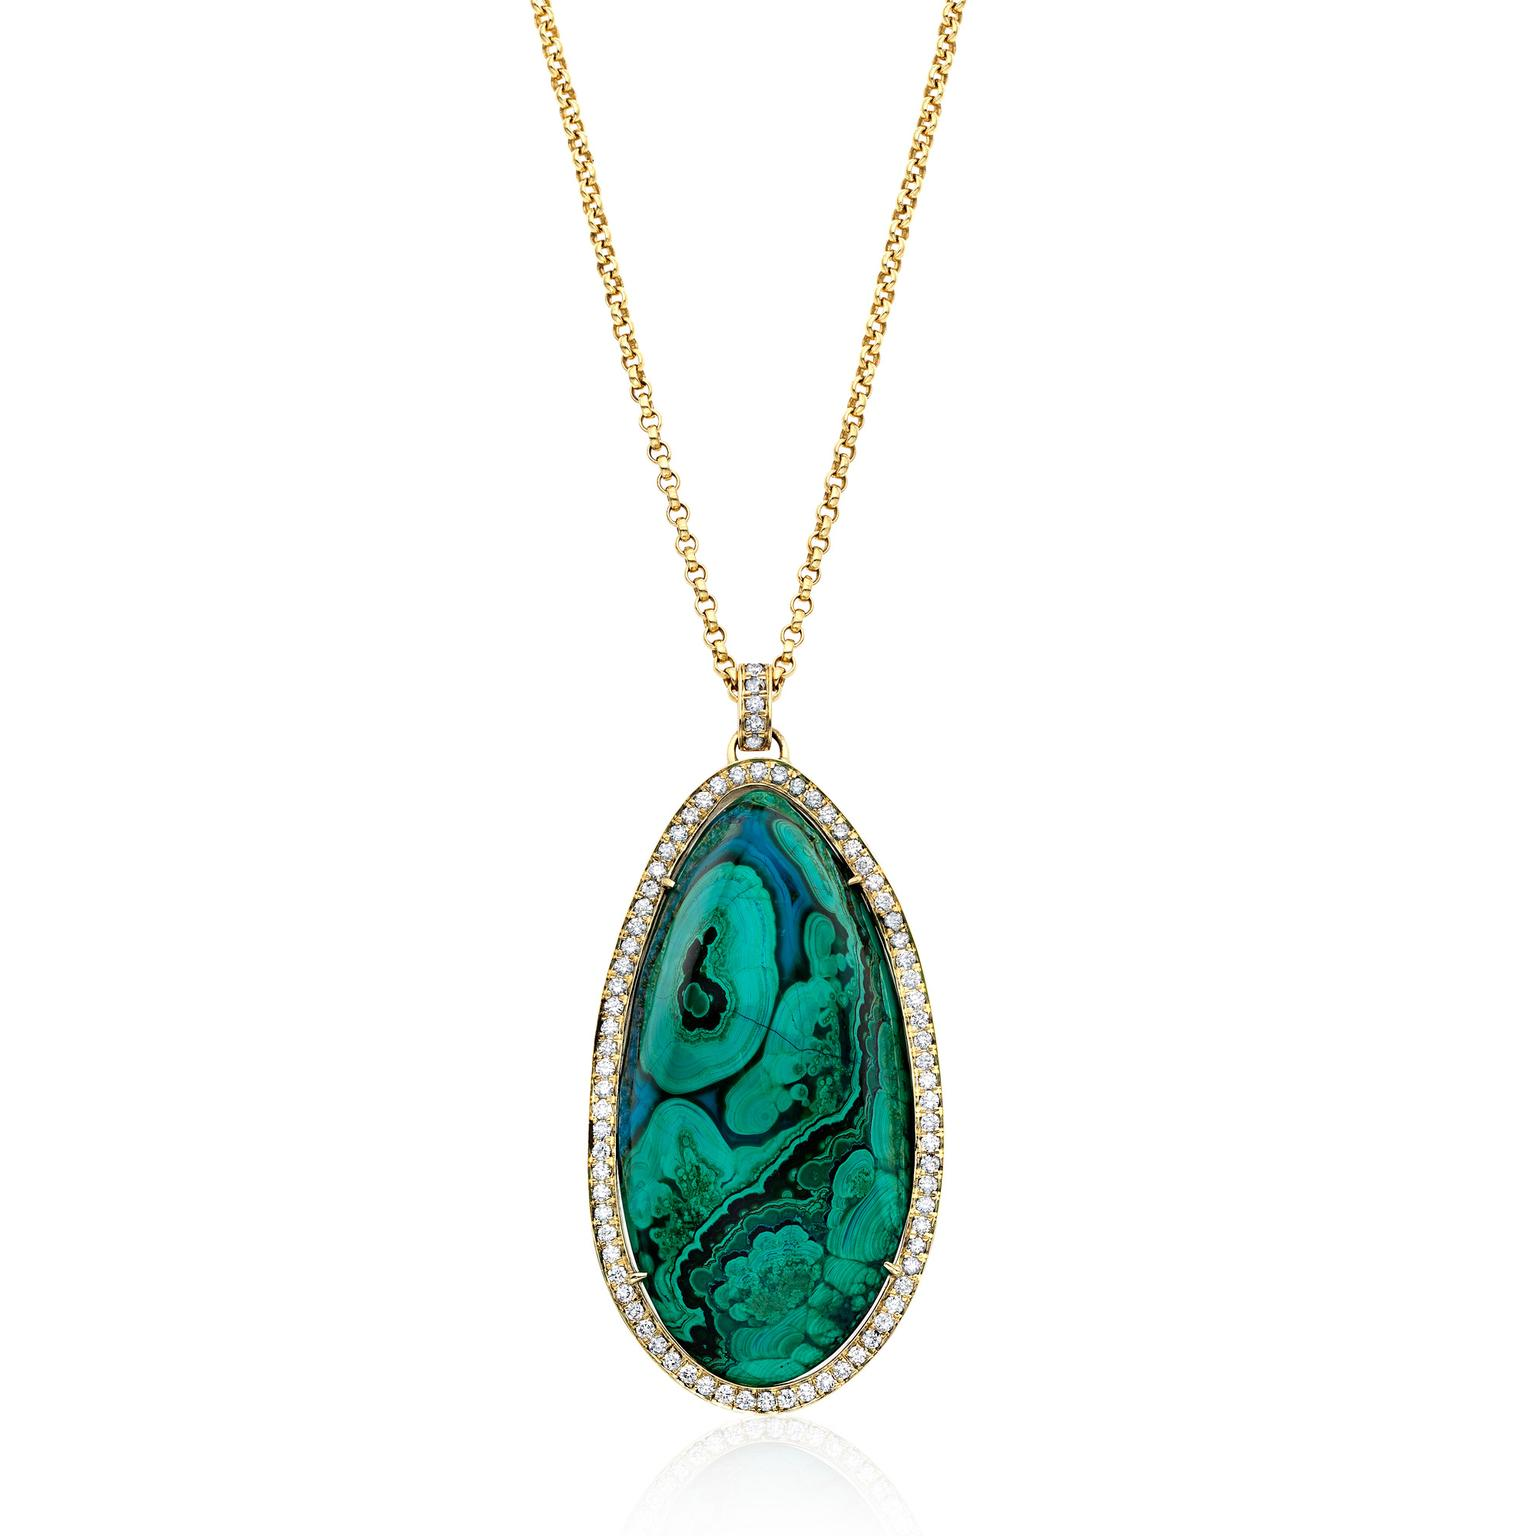 Kimberly McDonald azurite malachite pendant